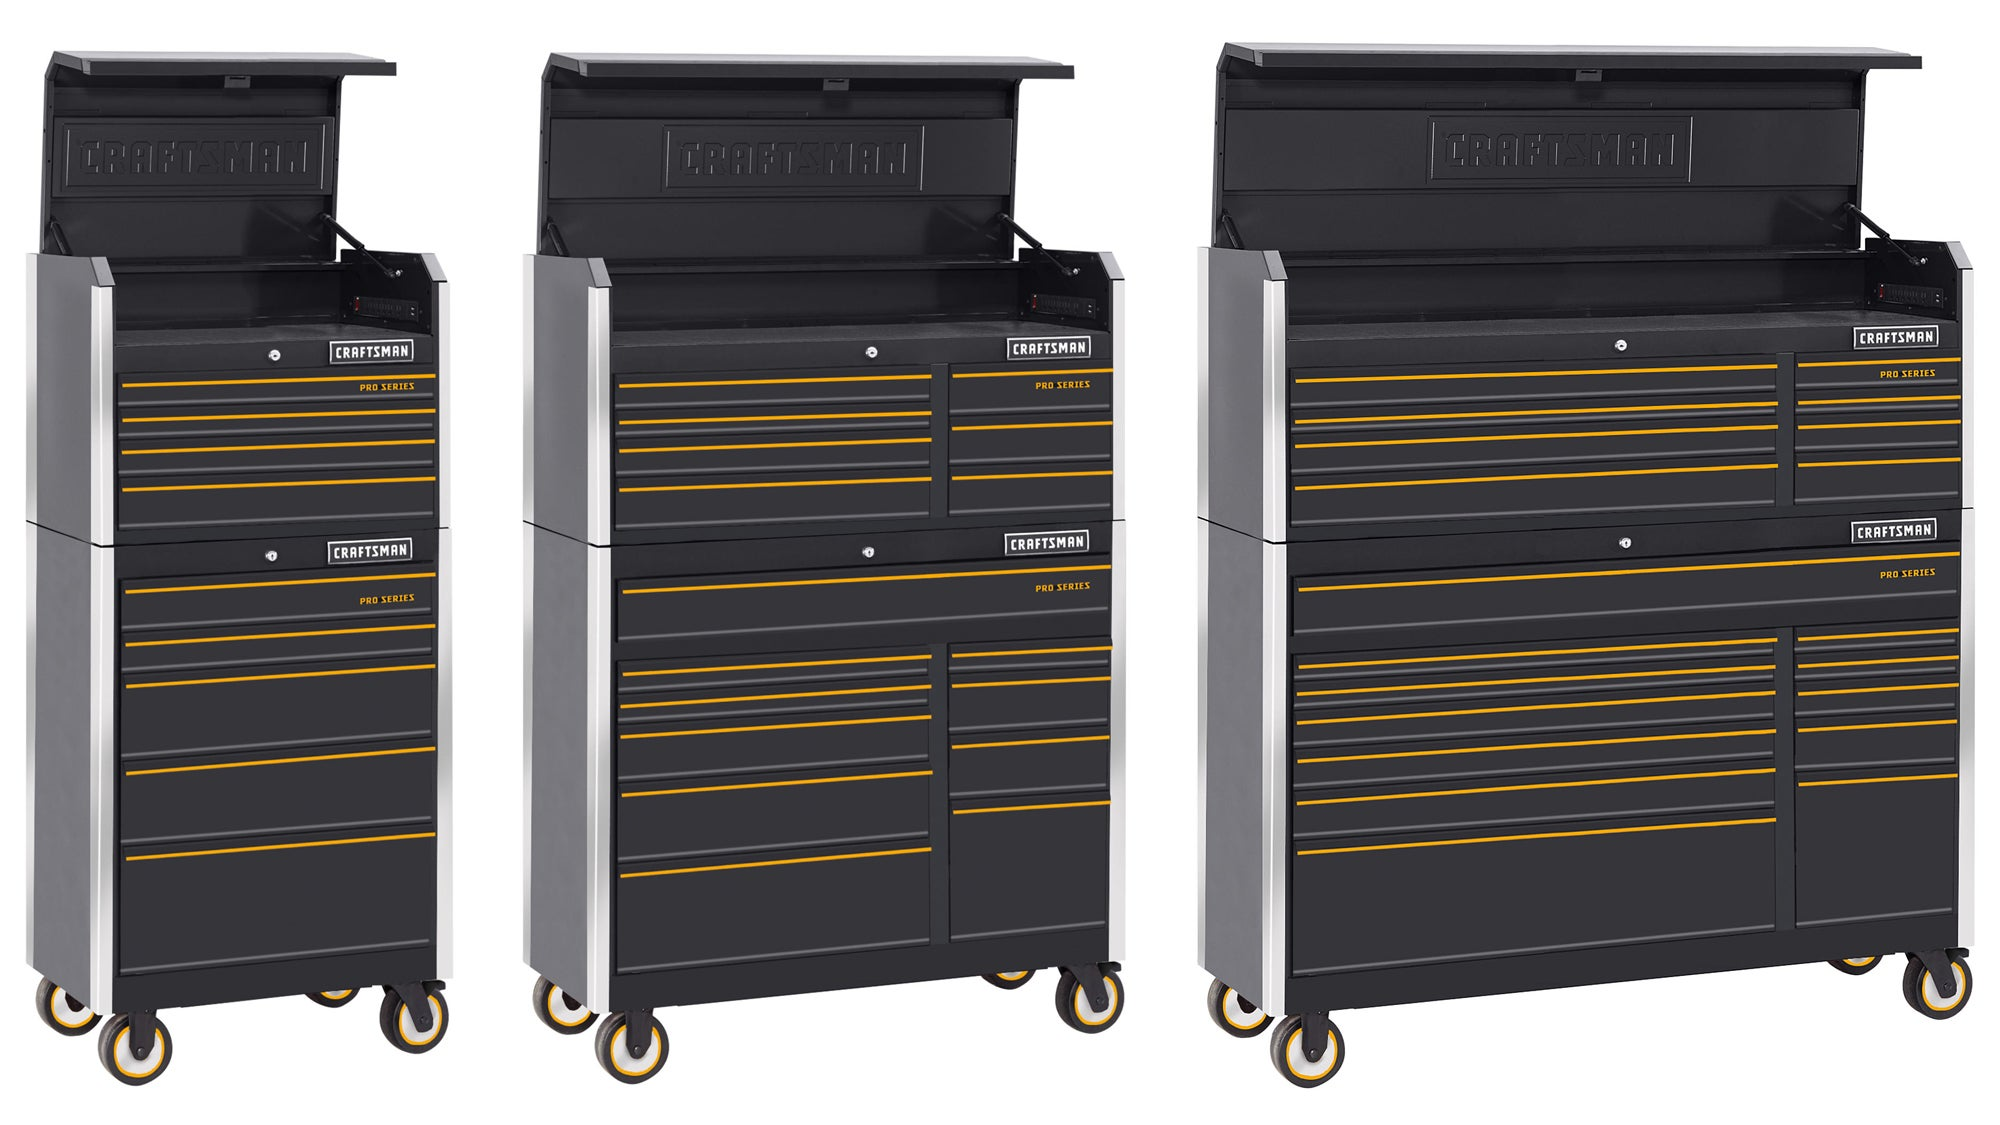 Craftsman's New Toolboxes Can Be Unlocked With A Smartphone